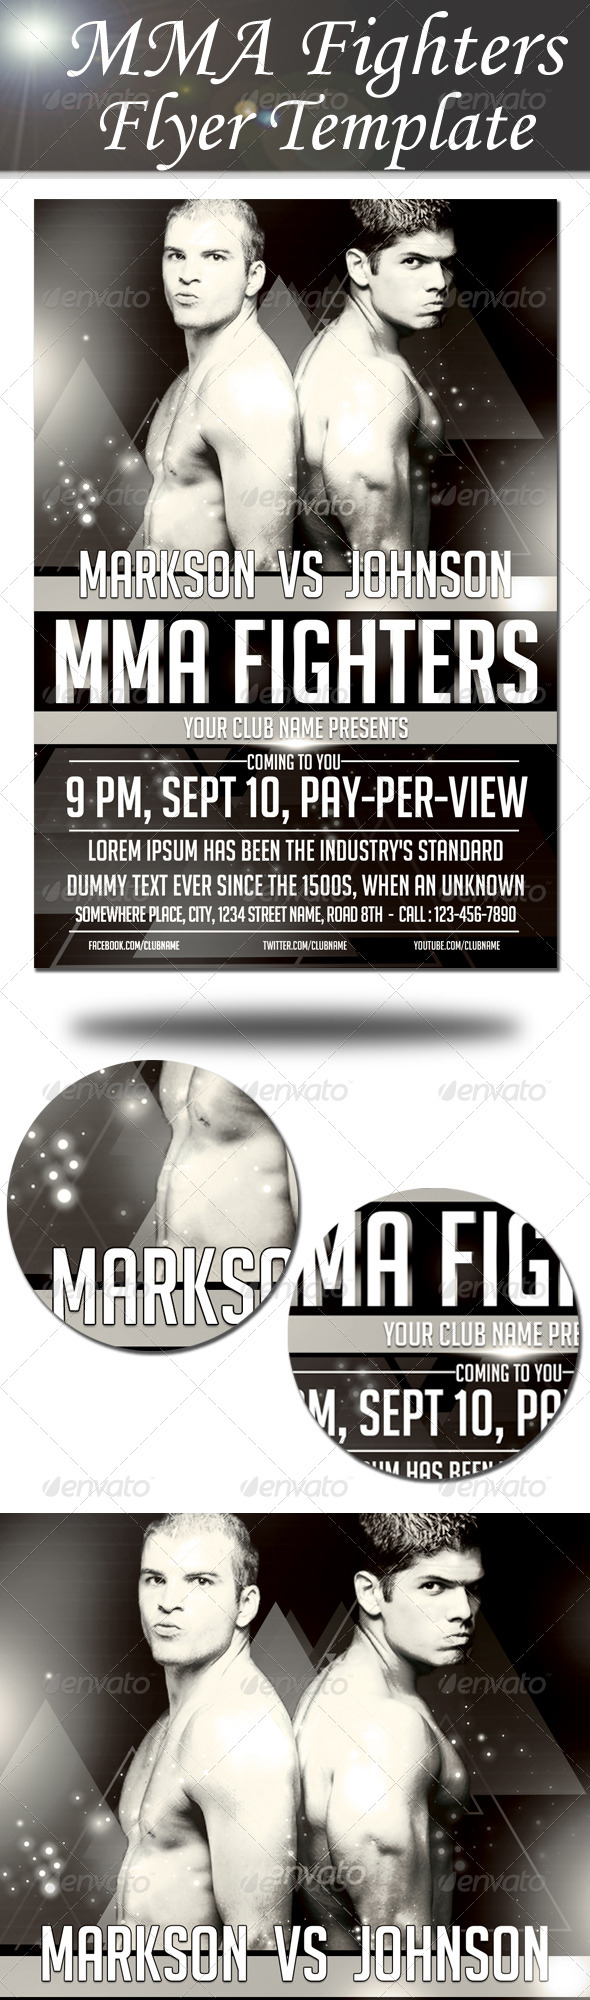 GraphicRiver MMA Fighters Flyer Template 8754548